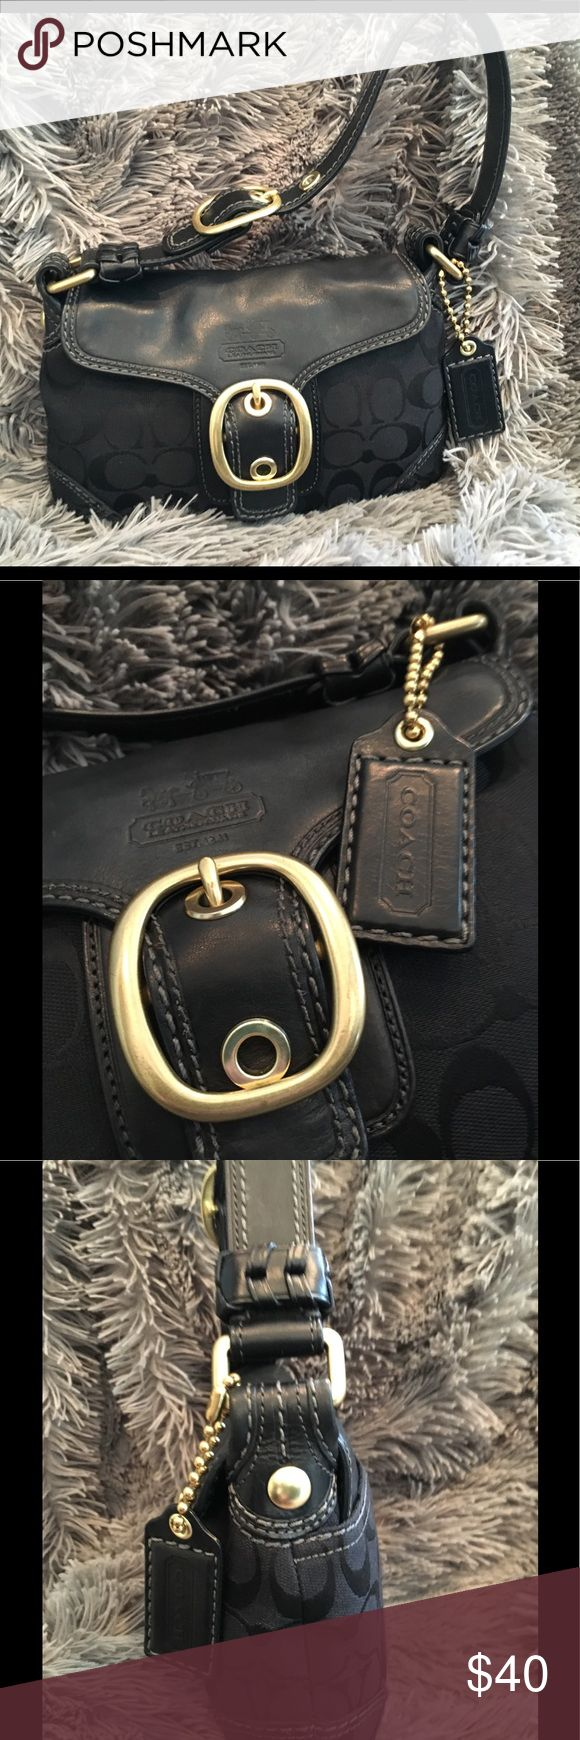 👁👁 Coach Signature Jacquard Mini Handbag This gorgeous Coach Signature Jacquard Mini Handbag fastens with a magnetic front flap and sports gold hardware.  Very gently used and in excellent condition. Coach Bags Mini Bags